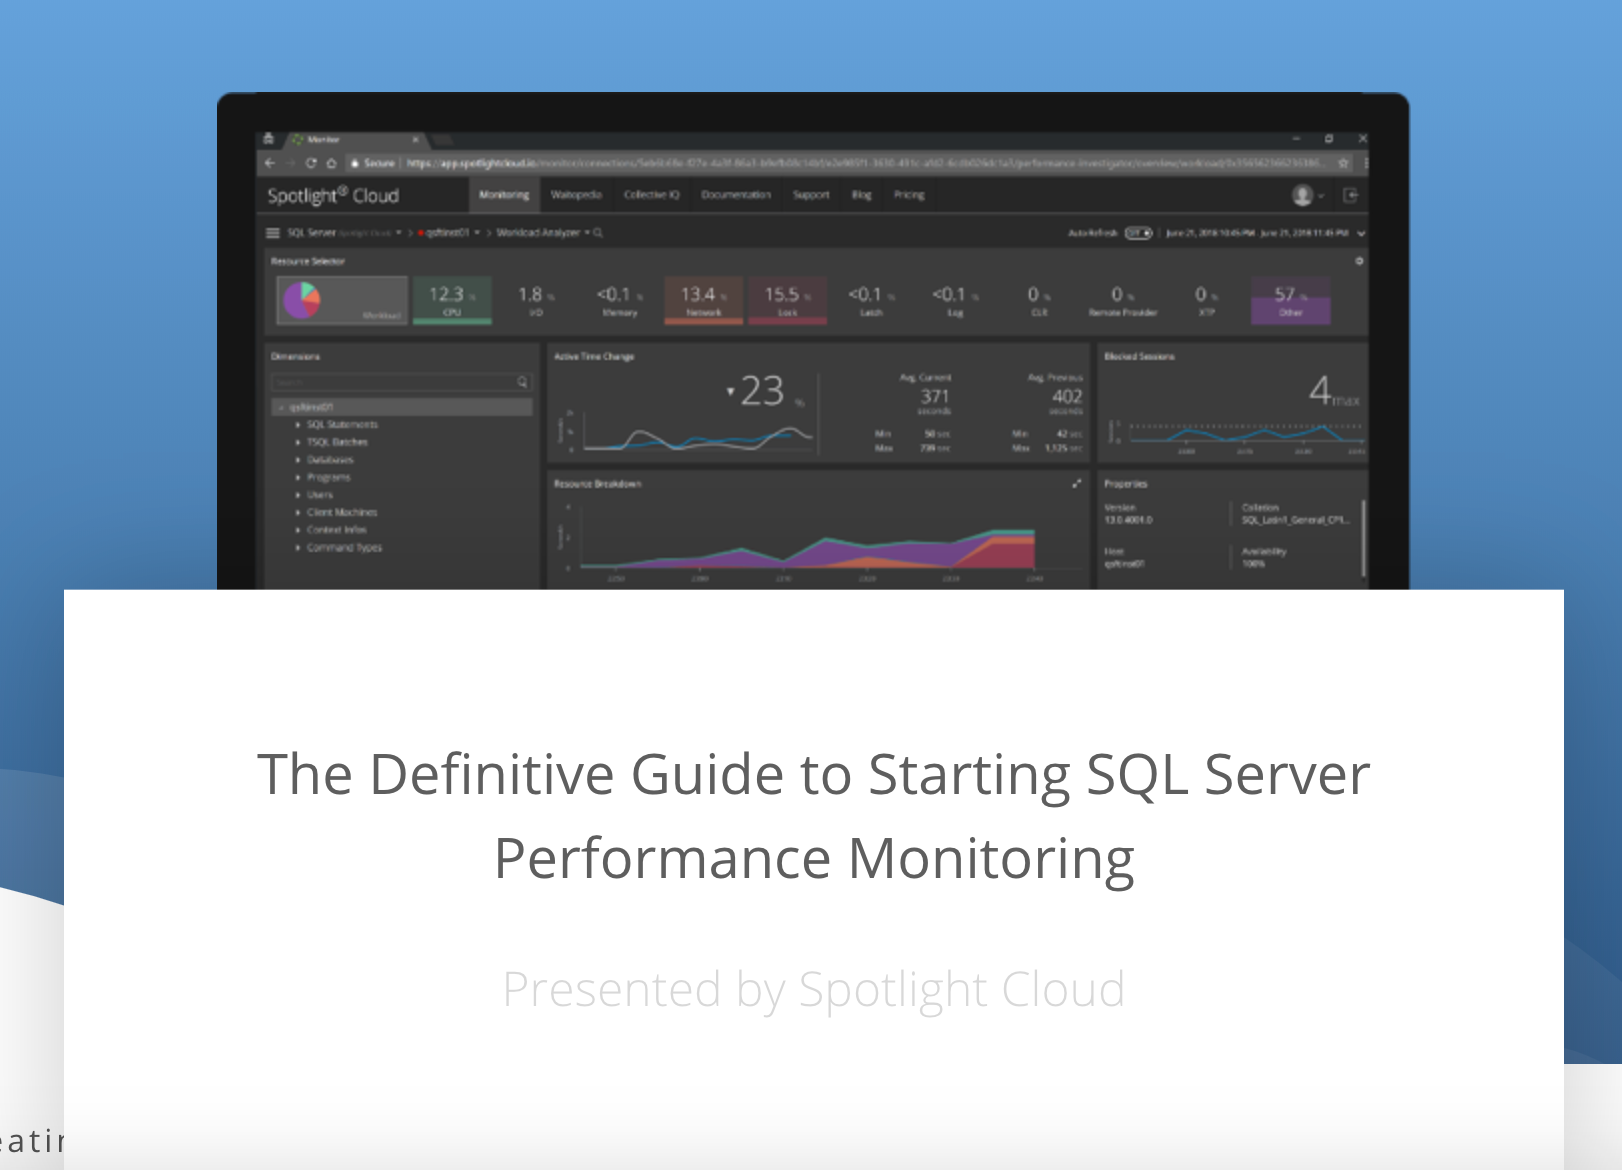 The Definitive Guide to Starting SQL Server Performance